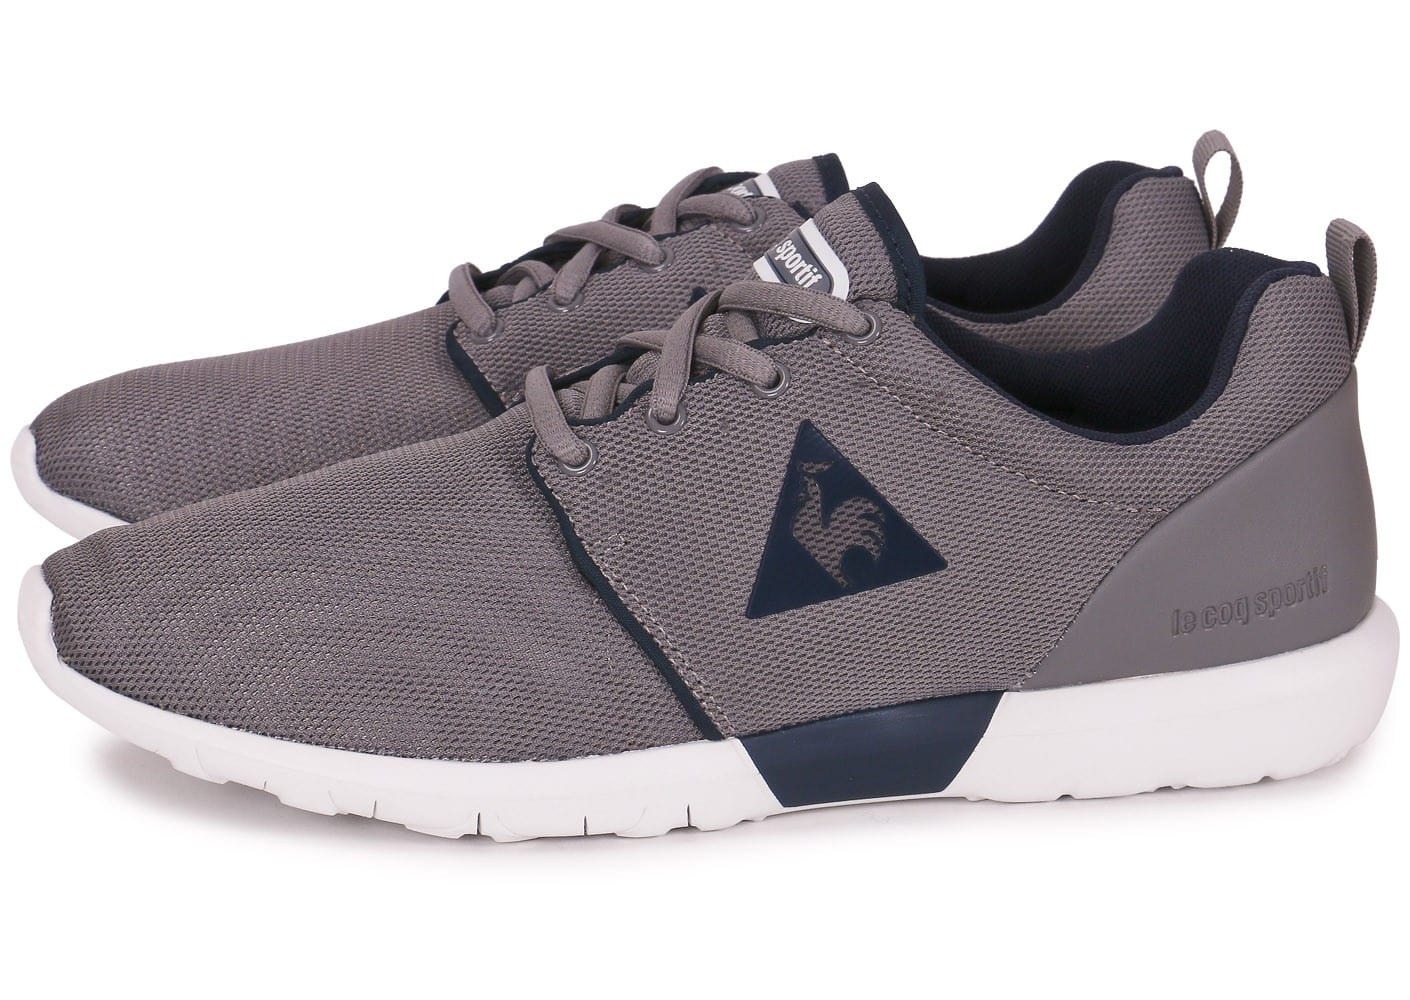 Coq Sportif Chaussure Grise